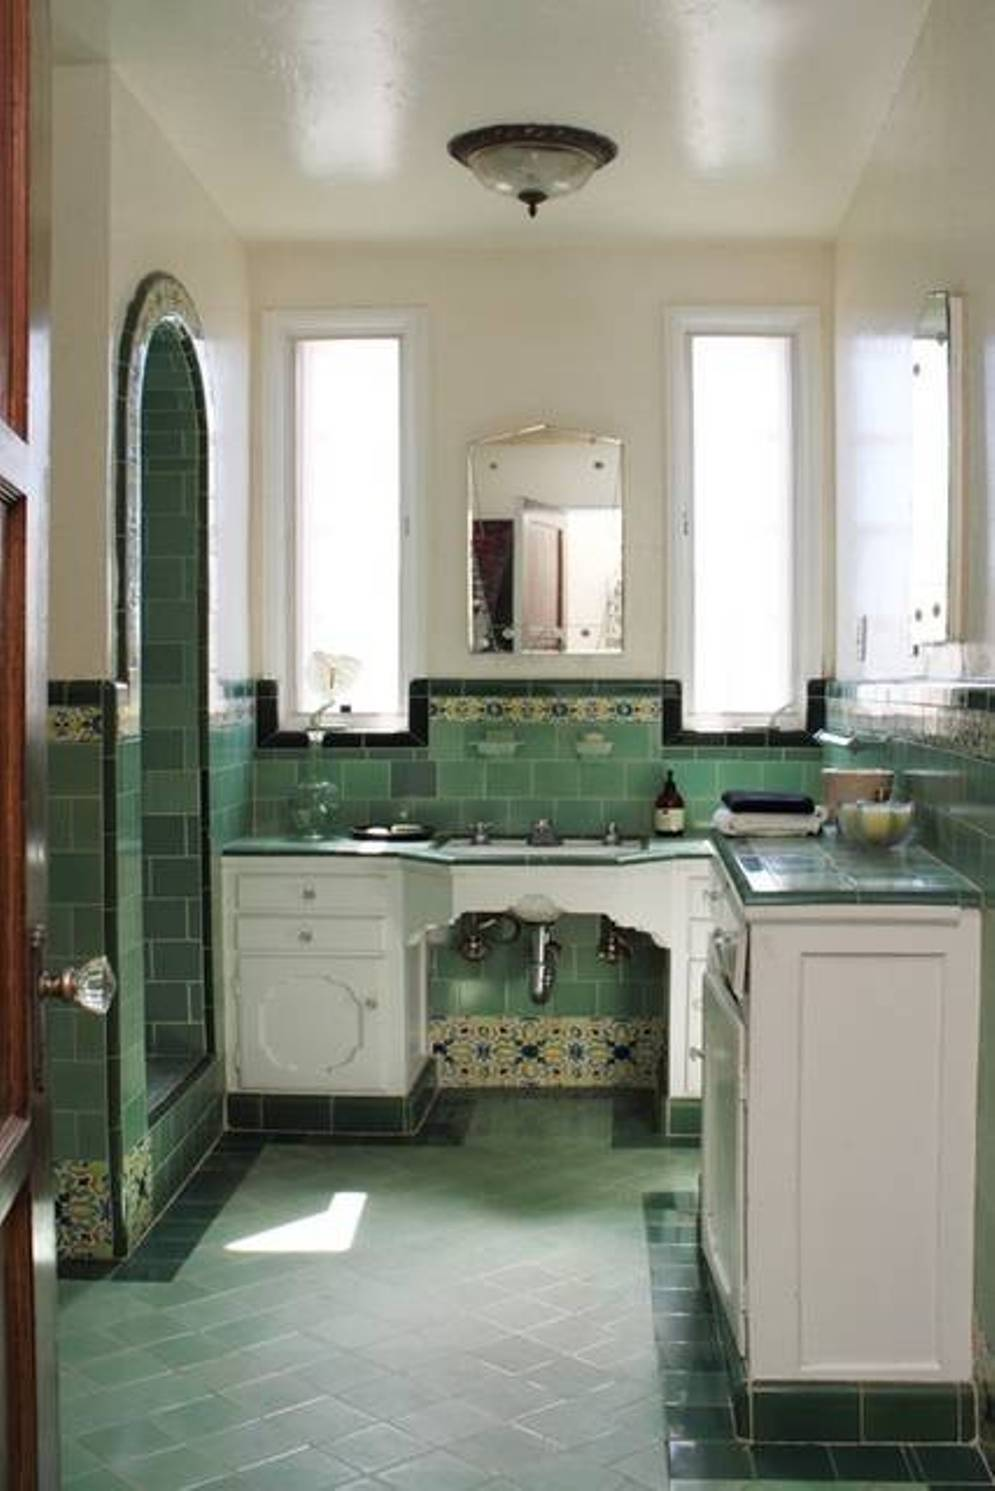 retro-bathroom-with-green-tiles-and-whote-vanity-cabinets